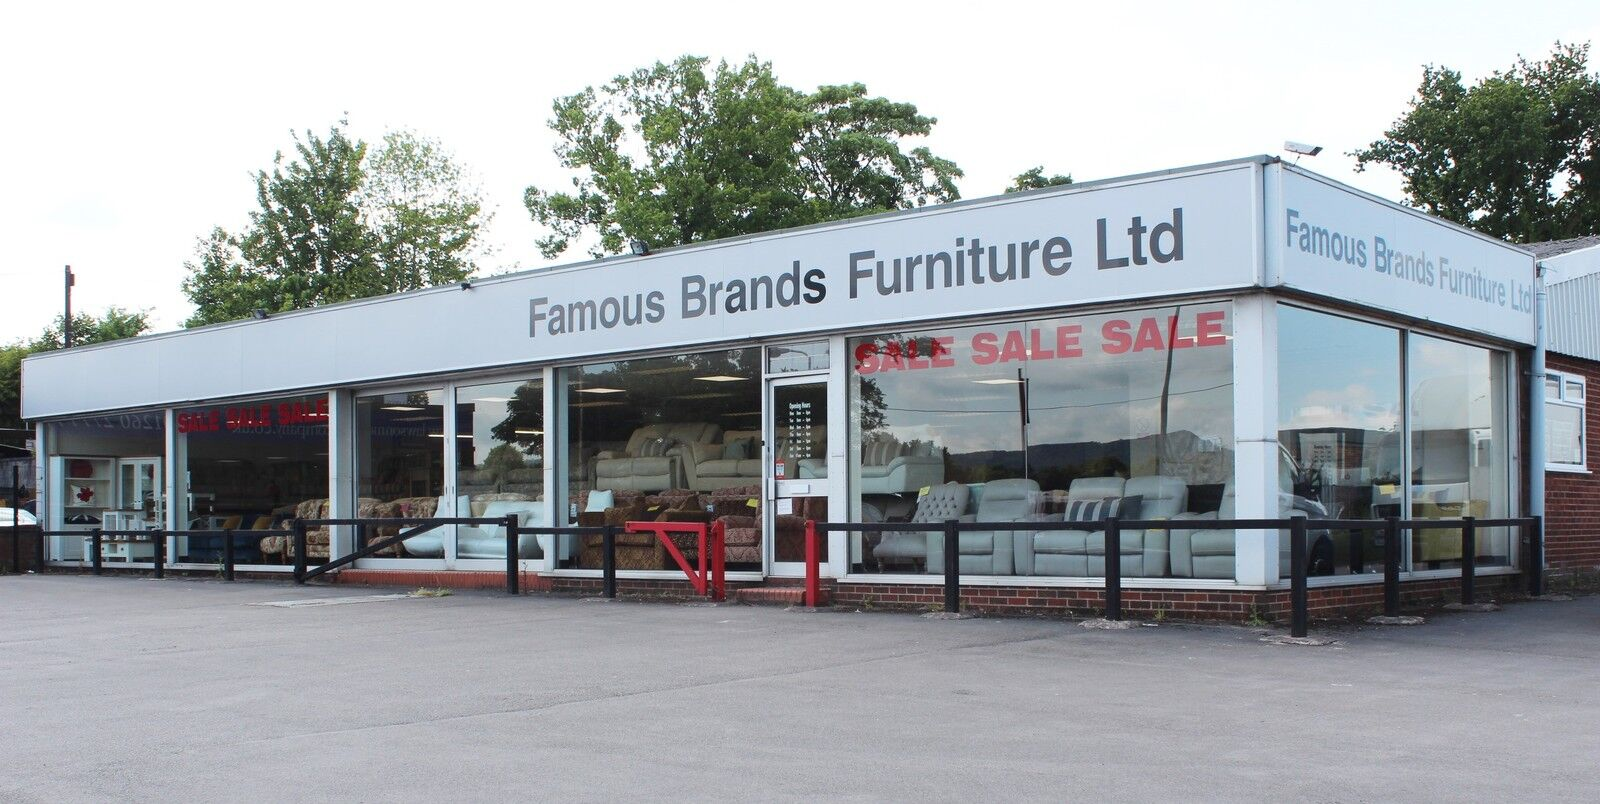 FAMOUS BRANDS FURNITURE